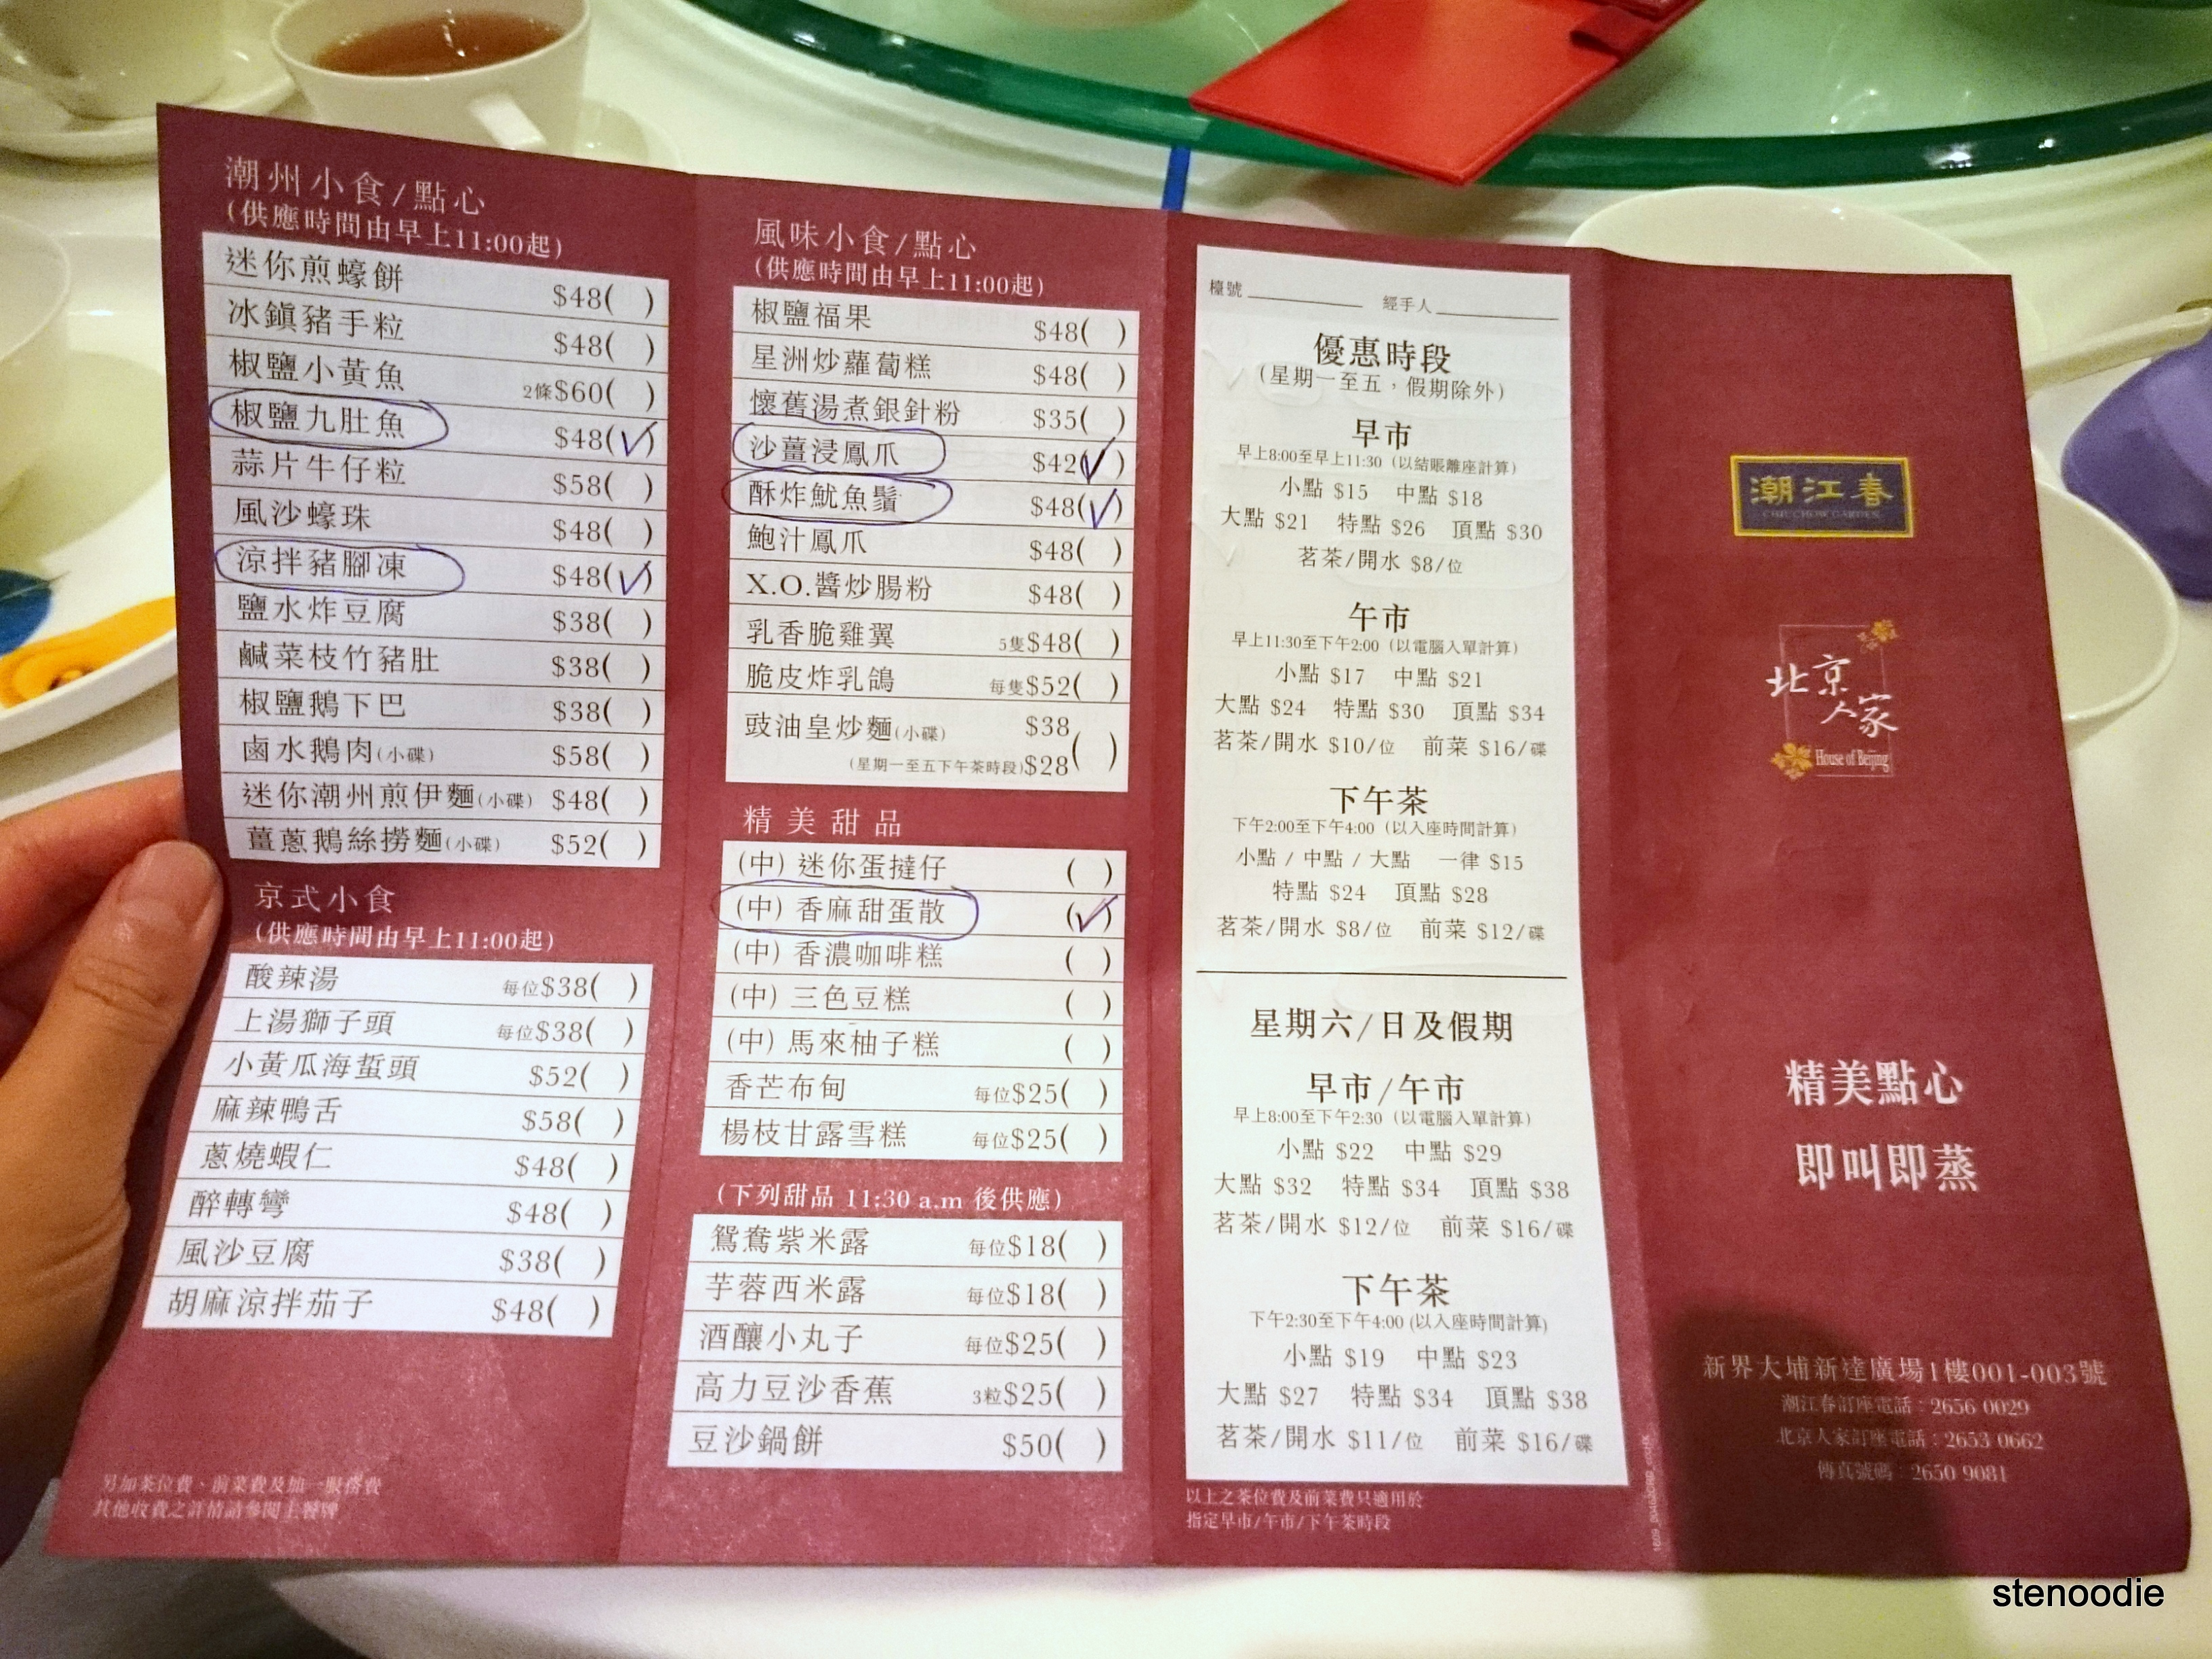 House of Beijing dim sum menu and prices